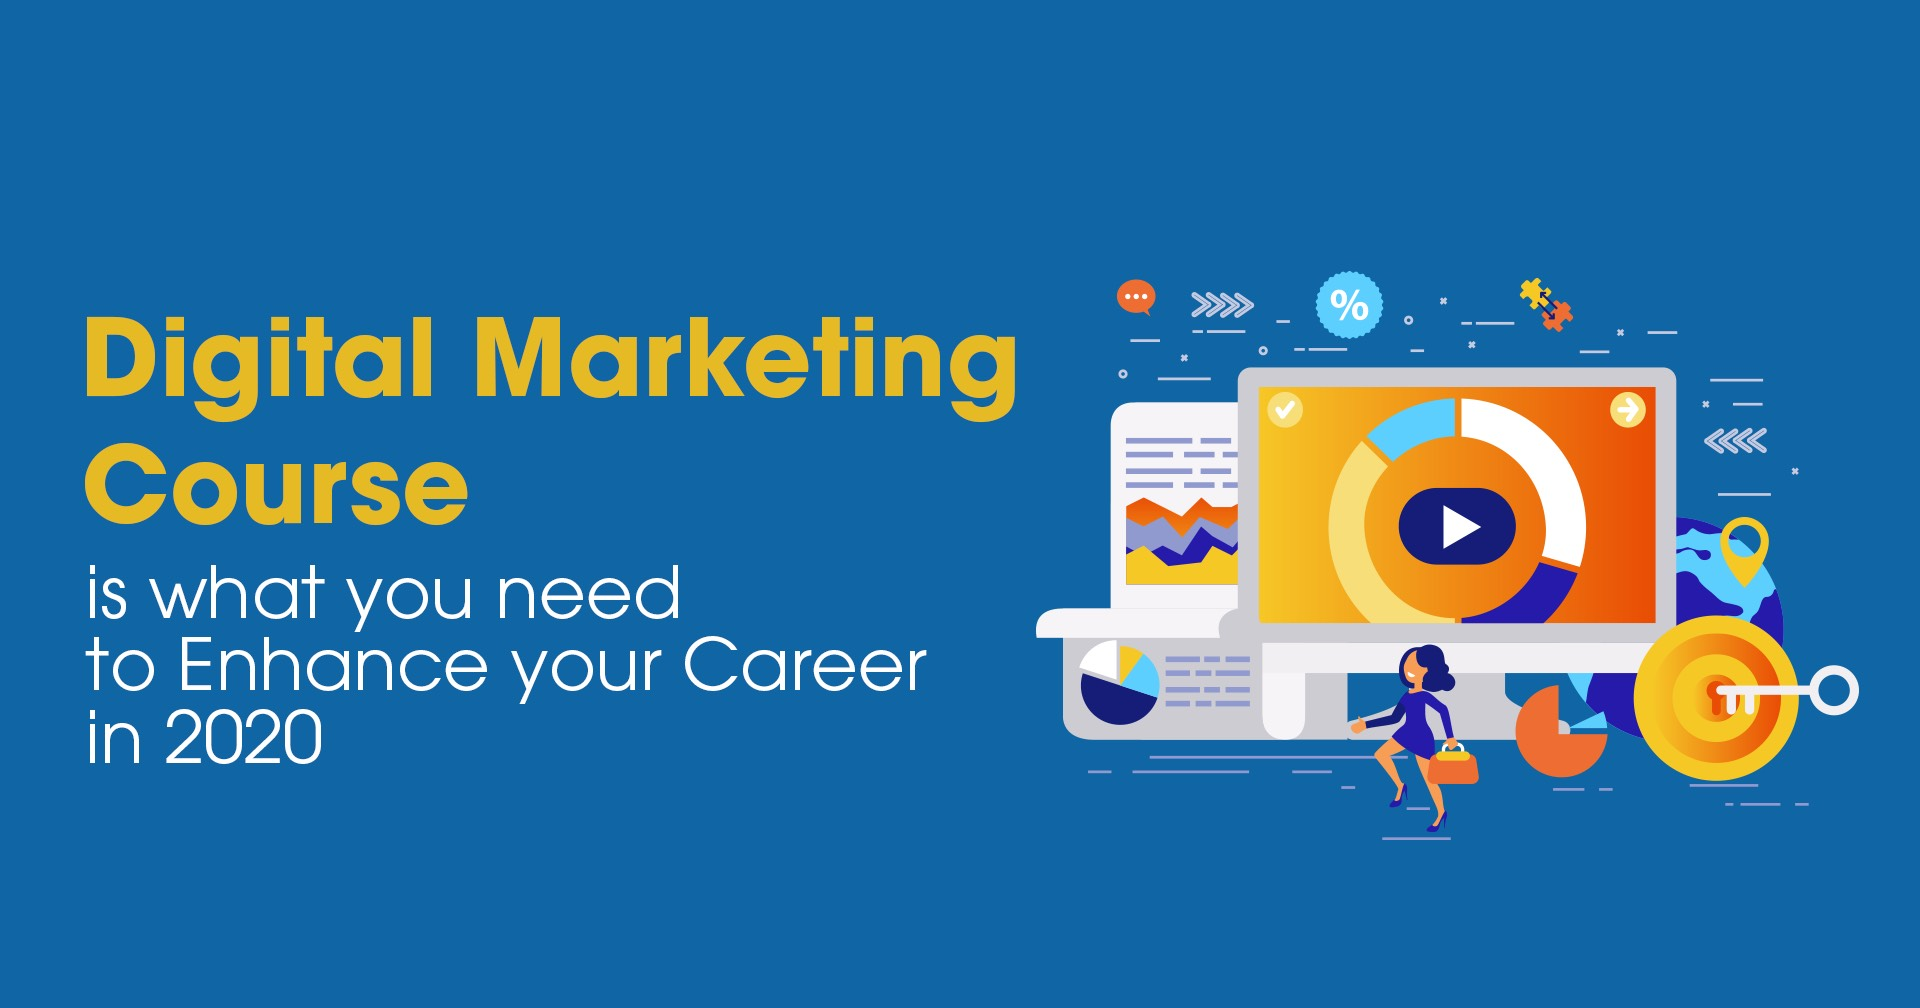 Power your Career with the Most Meritorious Digital Marketing Course